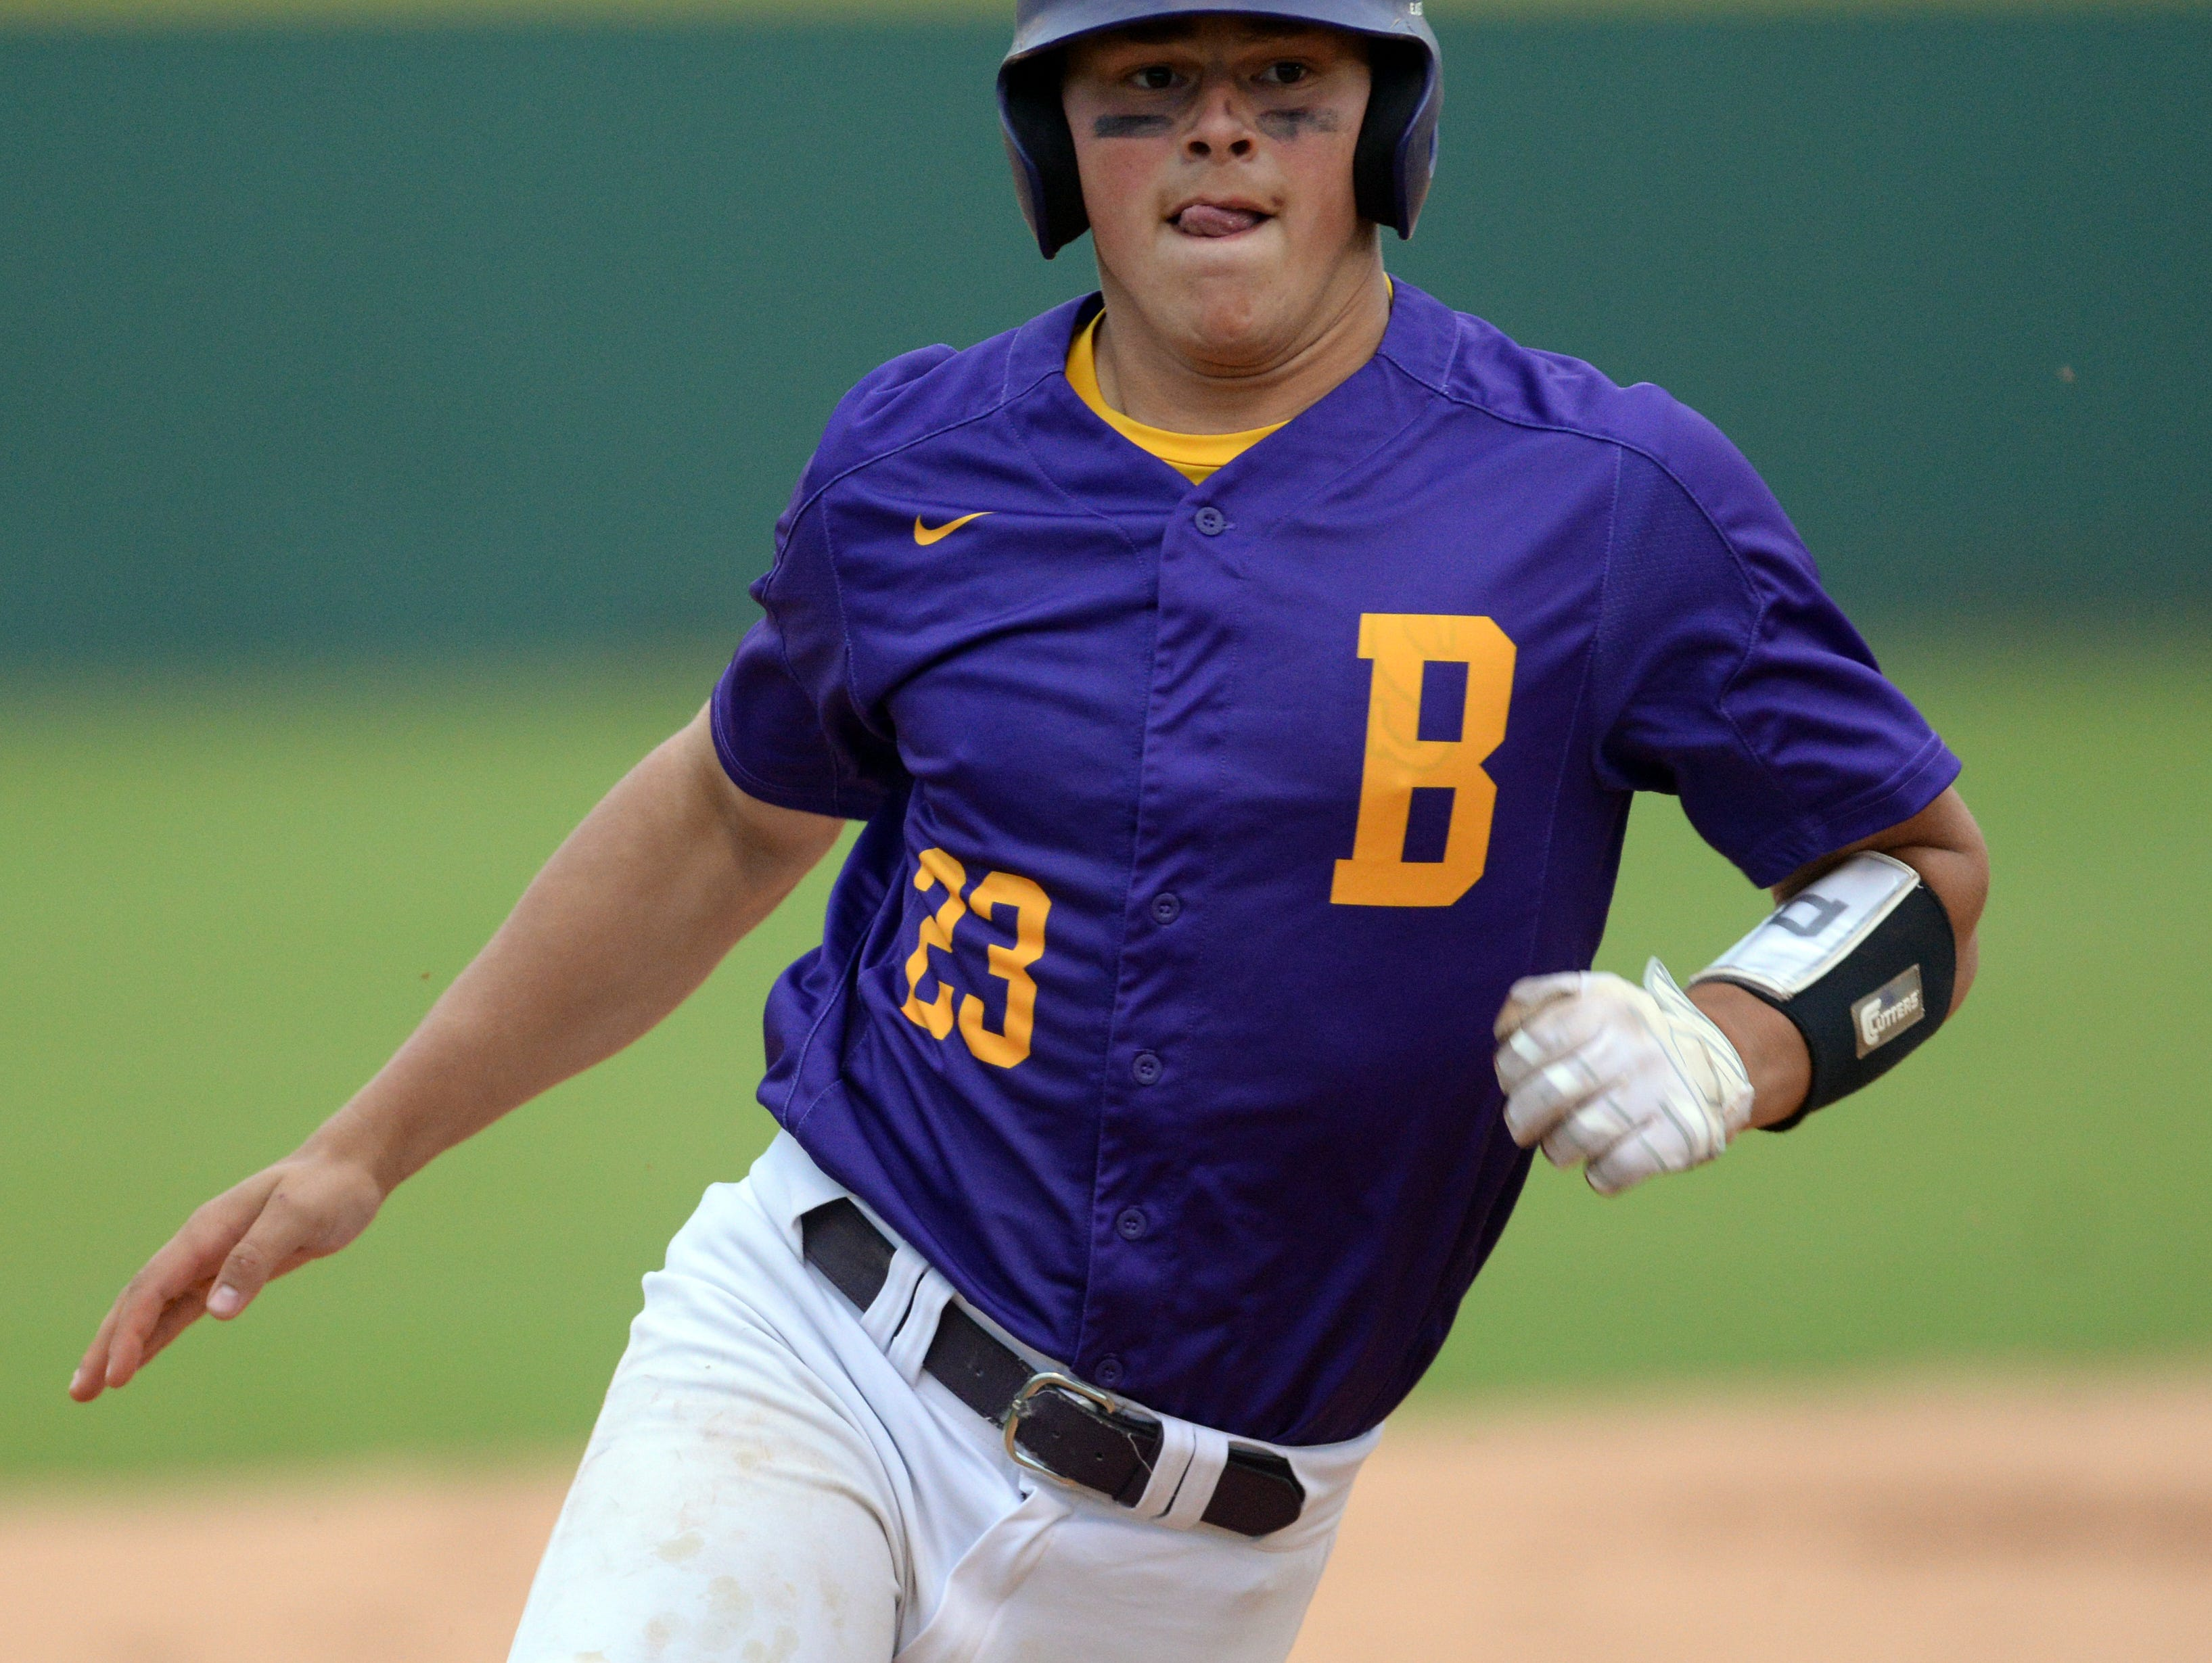 Byrd's Lucas Henderson rounds third base on an in the park homerun that scores two in the 4th inning of his game against Haughton.